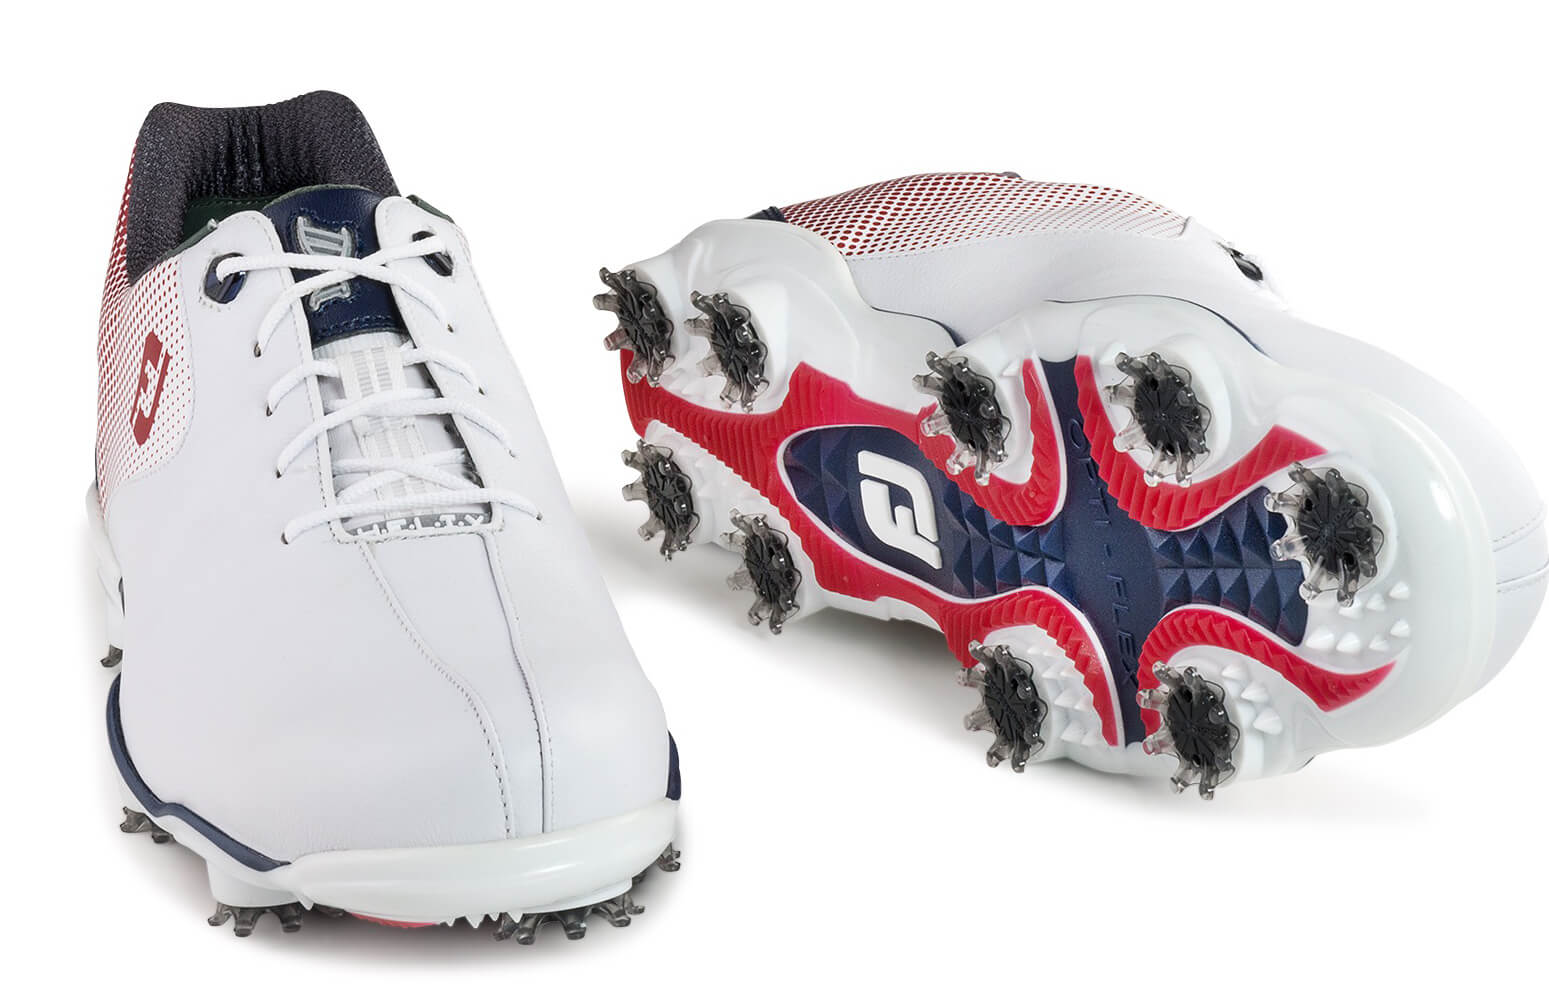 FootJoy-DNA-Helix-Golf-Shoes-Leather-Waterproof-Men-039-s-New-Choose-Color-amp-Size thumbnail 5